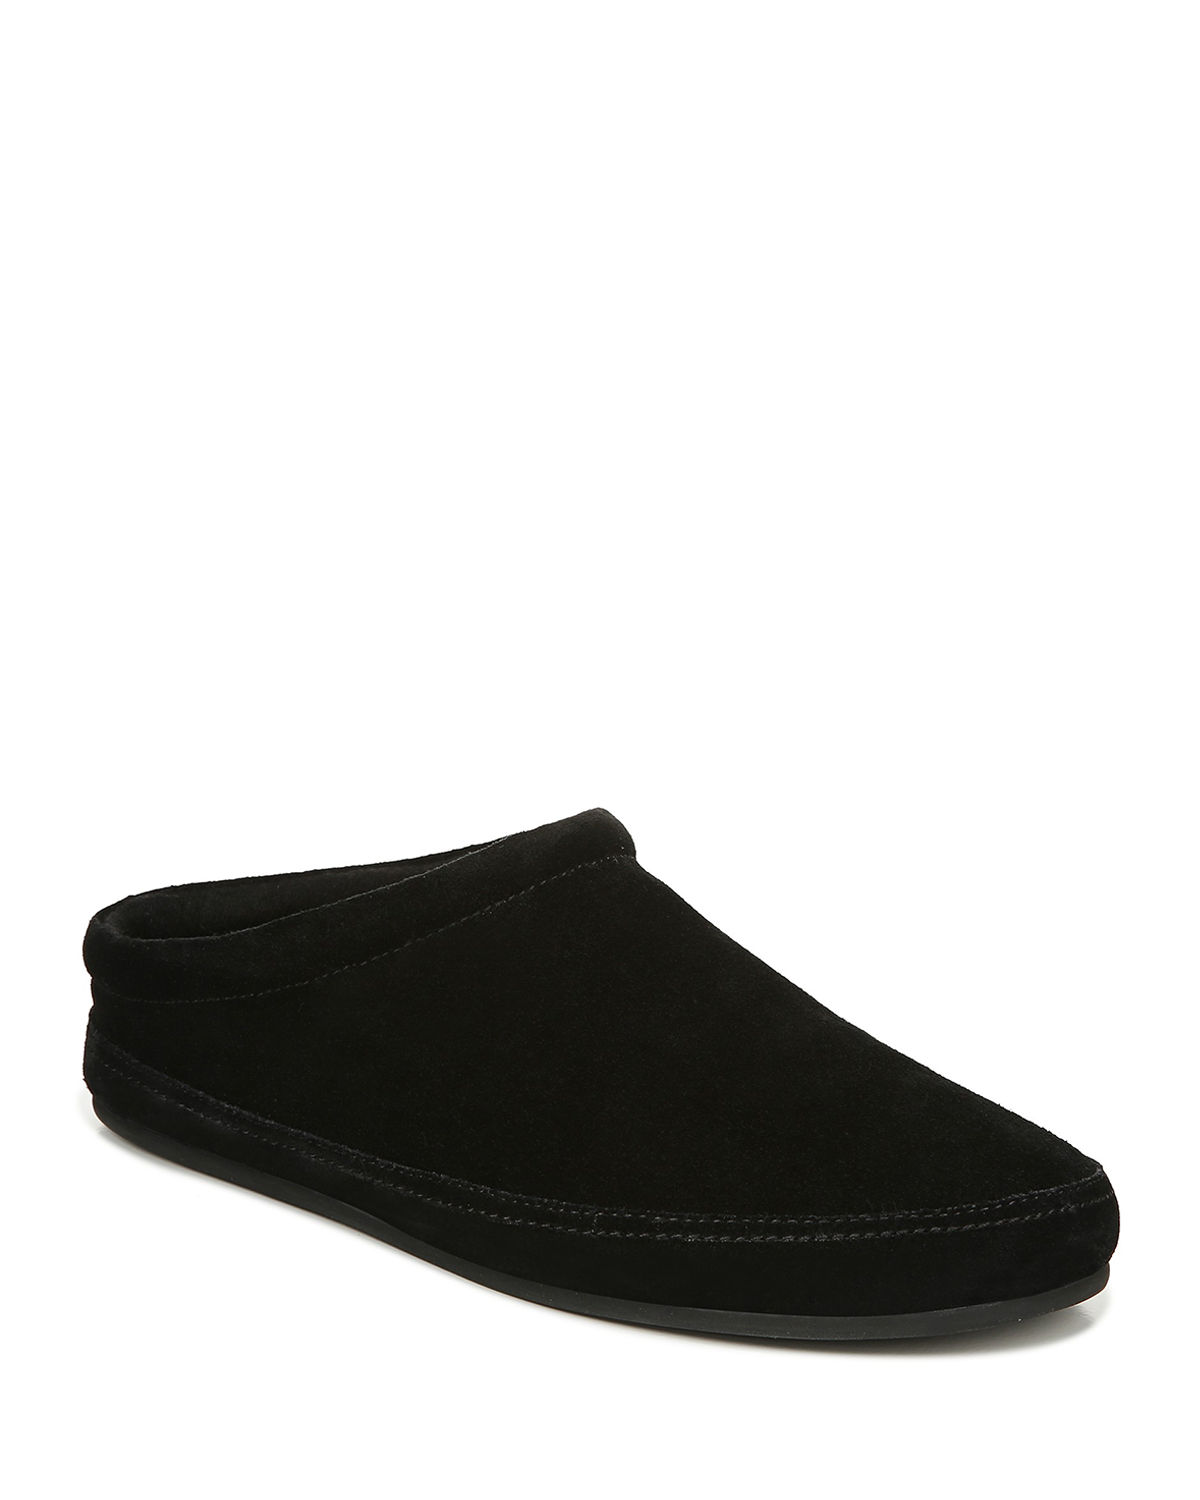 Vince Slippers MEN'S HOWELL SOLID SUEDE SLIPPERS